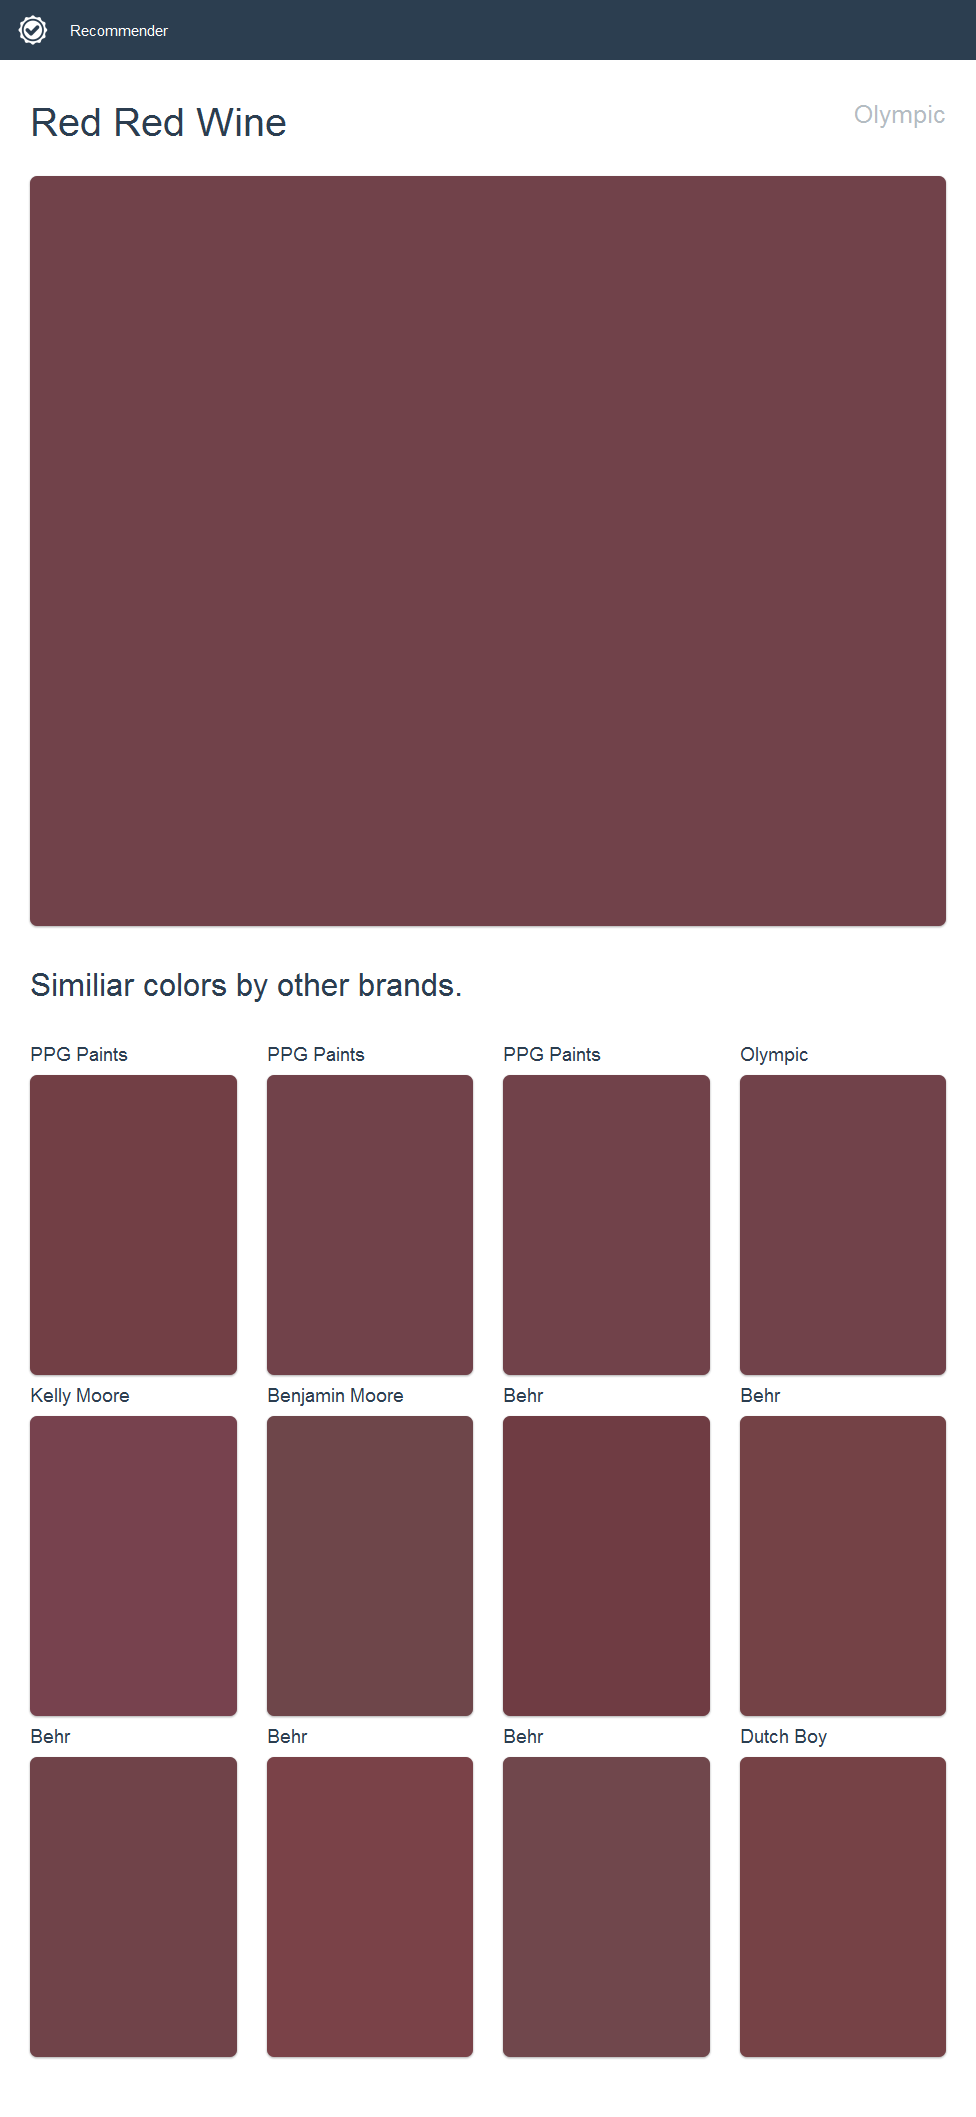 Red Wine Olympic Click The Image To See Similiar Colors By Other Brands